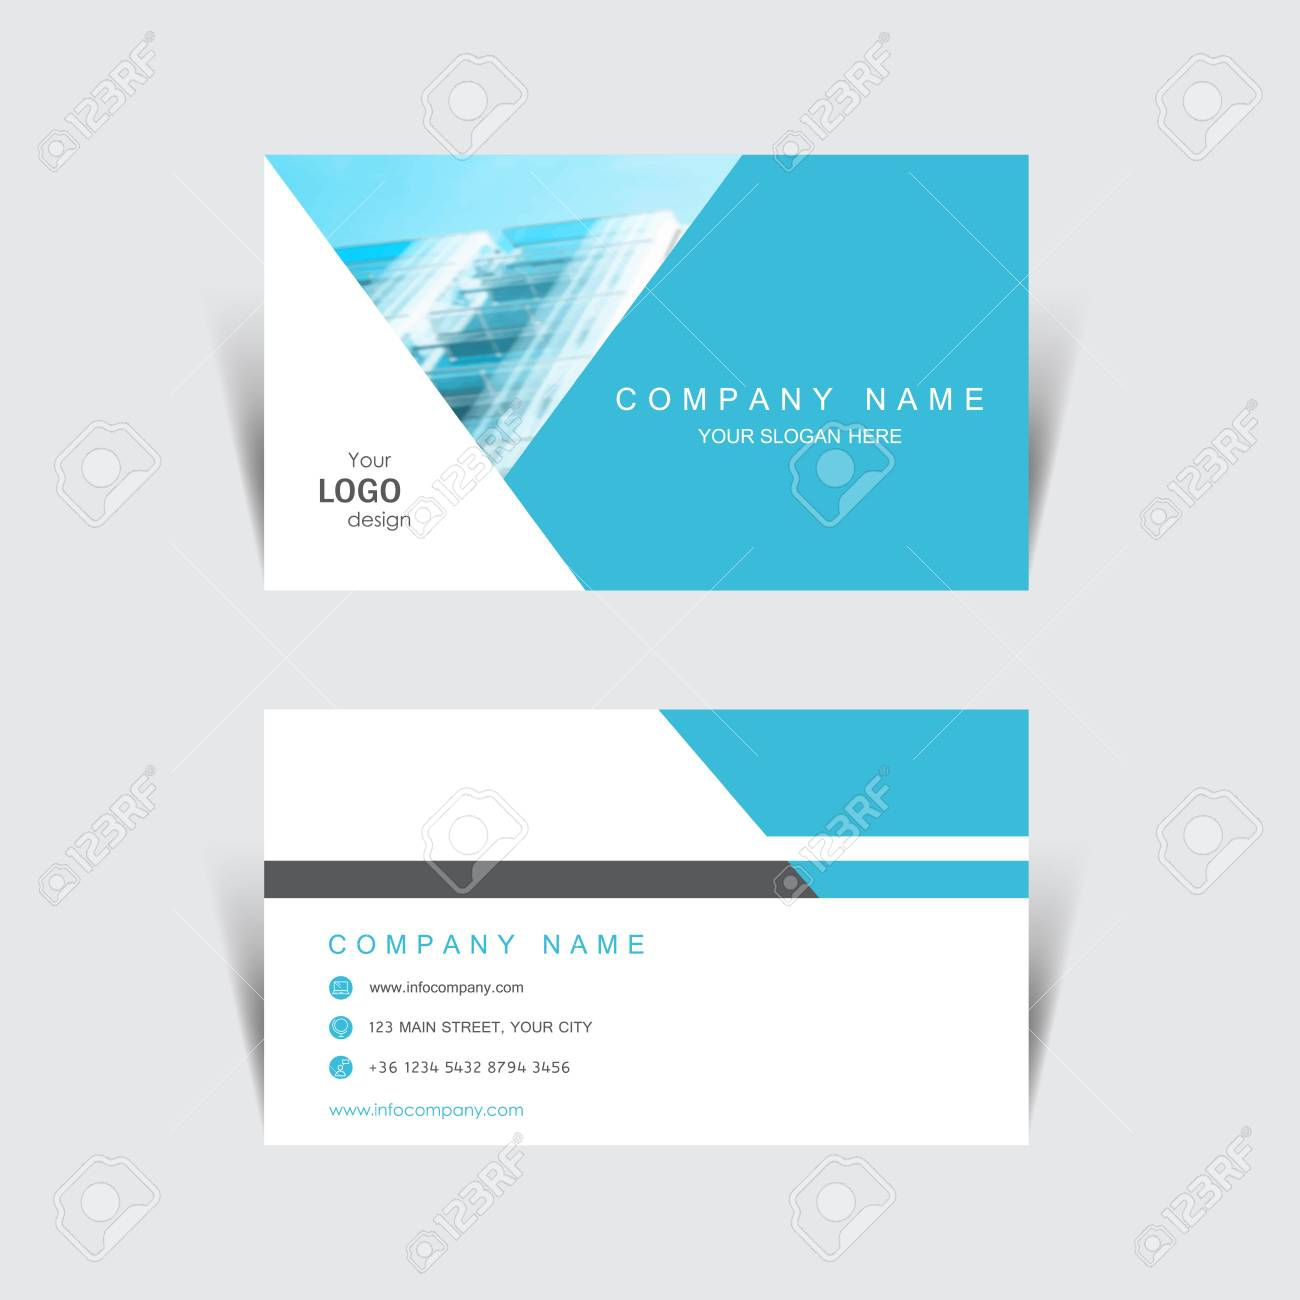 Business card print template design vector illustration stationery business card print template design vector illustration stationery business design visiting cards set design reheart Image collections